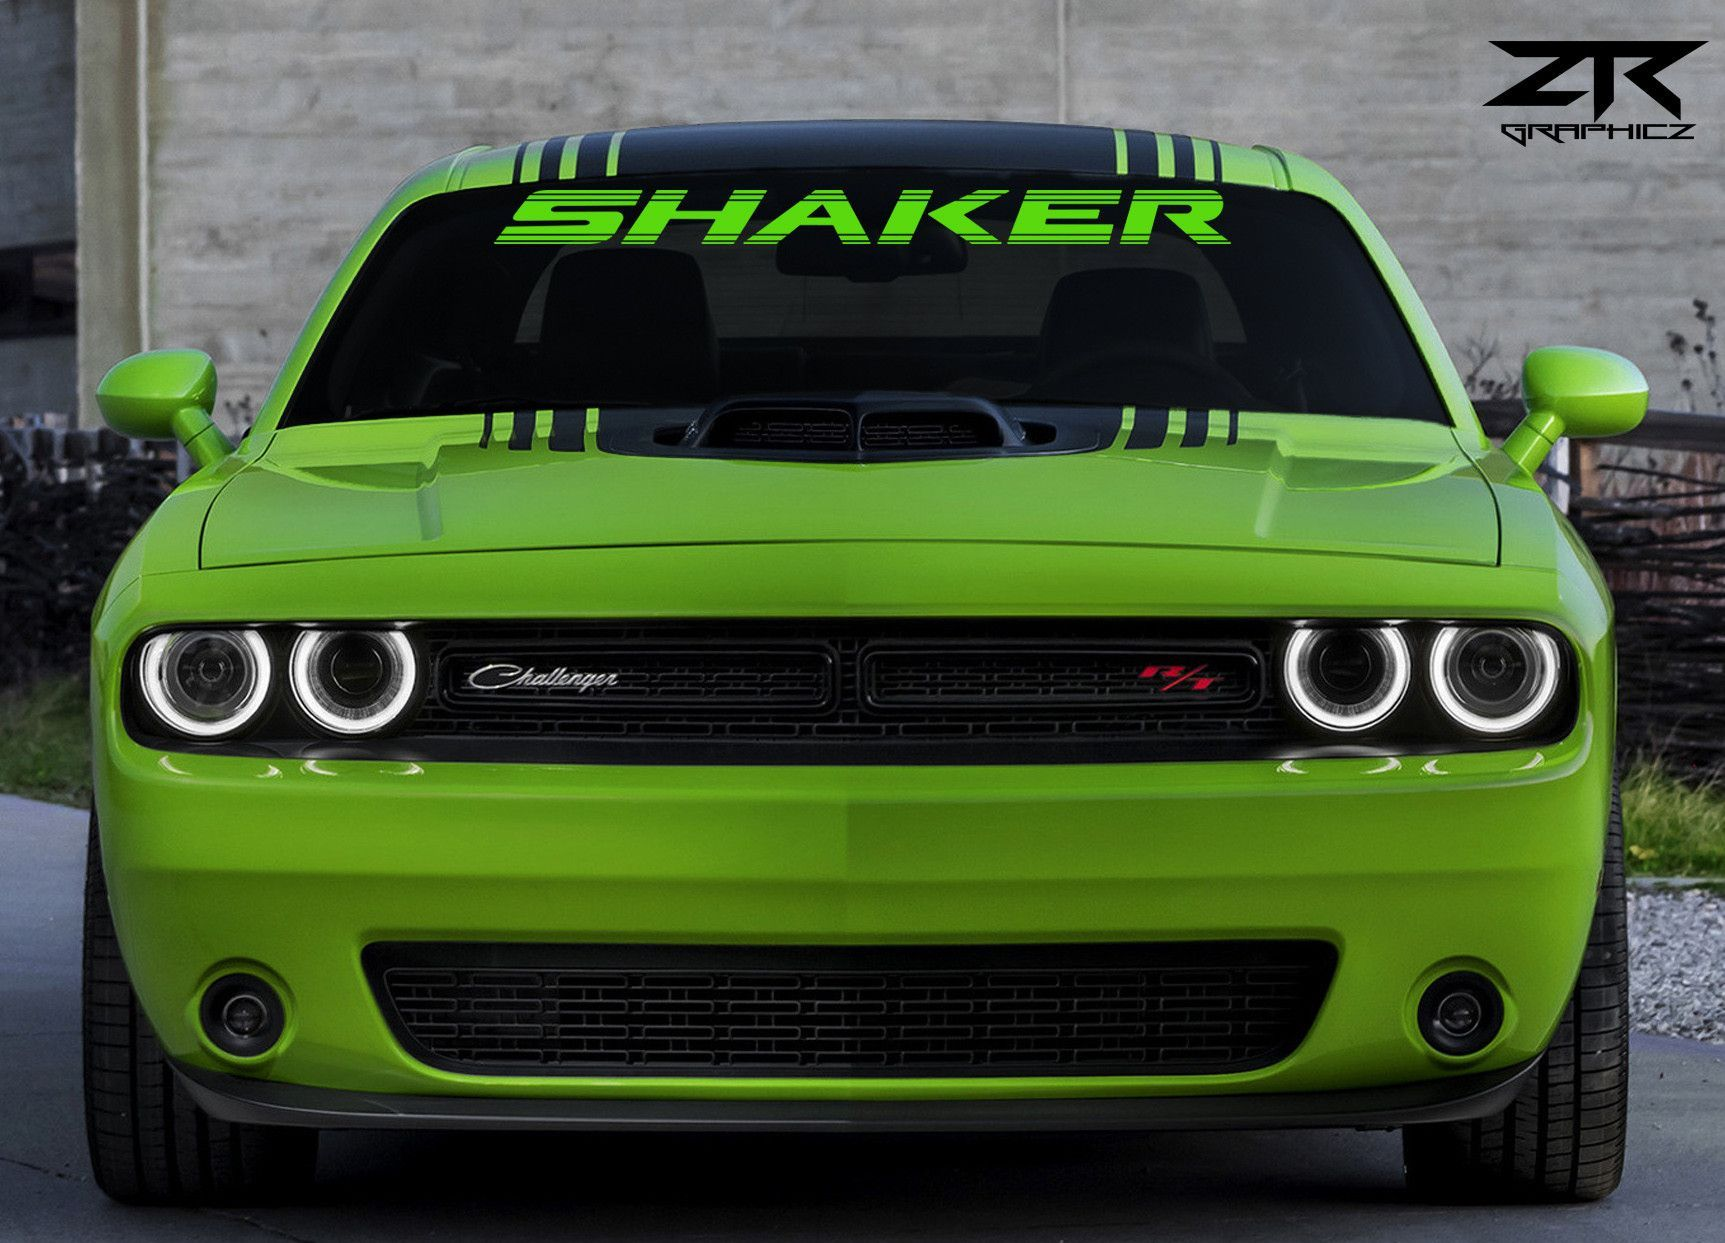 dodge challenger rt shaker windshield decal | challenger rt, dodge